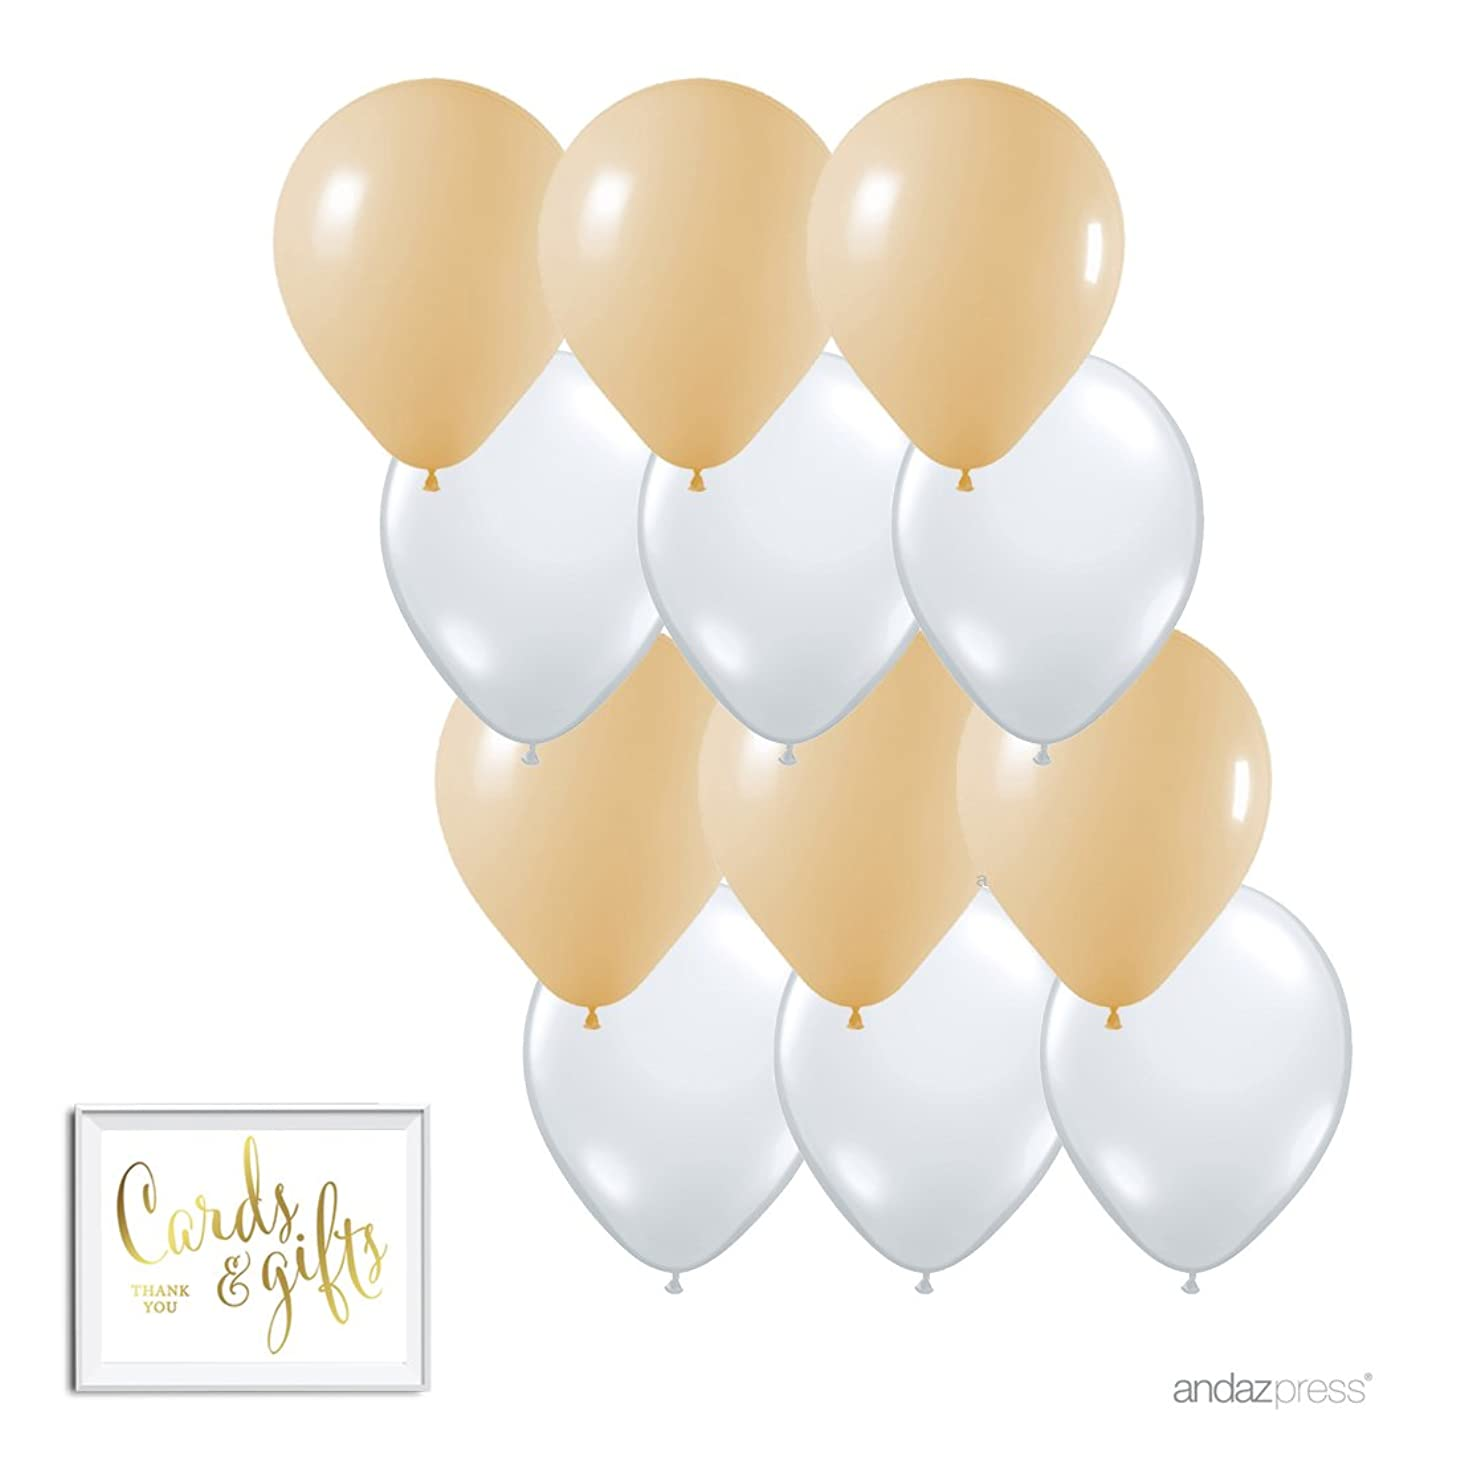 Andaz Press 11-inch Latex Balloon Duo Party Kit with Gold Cards & Gifts Sign, Kraft Brown Tan and White, 12-pk, Burlap Lace Inspired Wedding Bridal Baby Shower Decorations